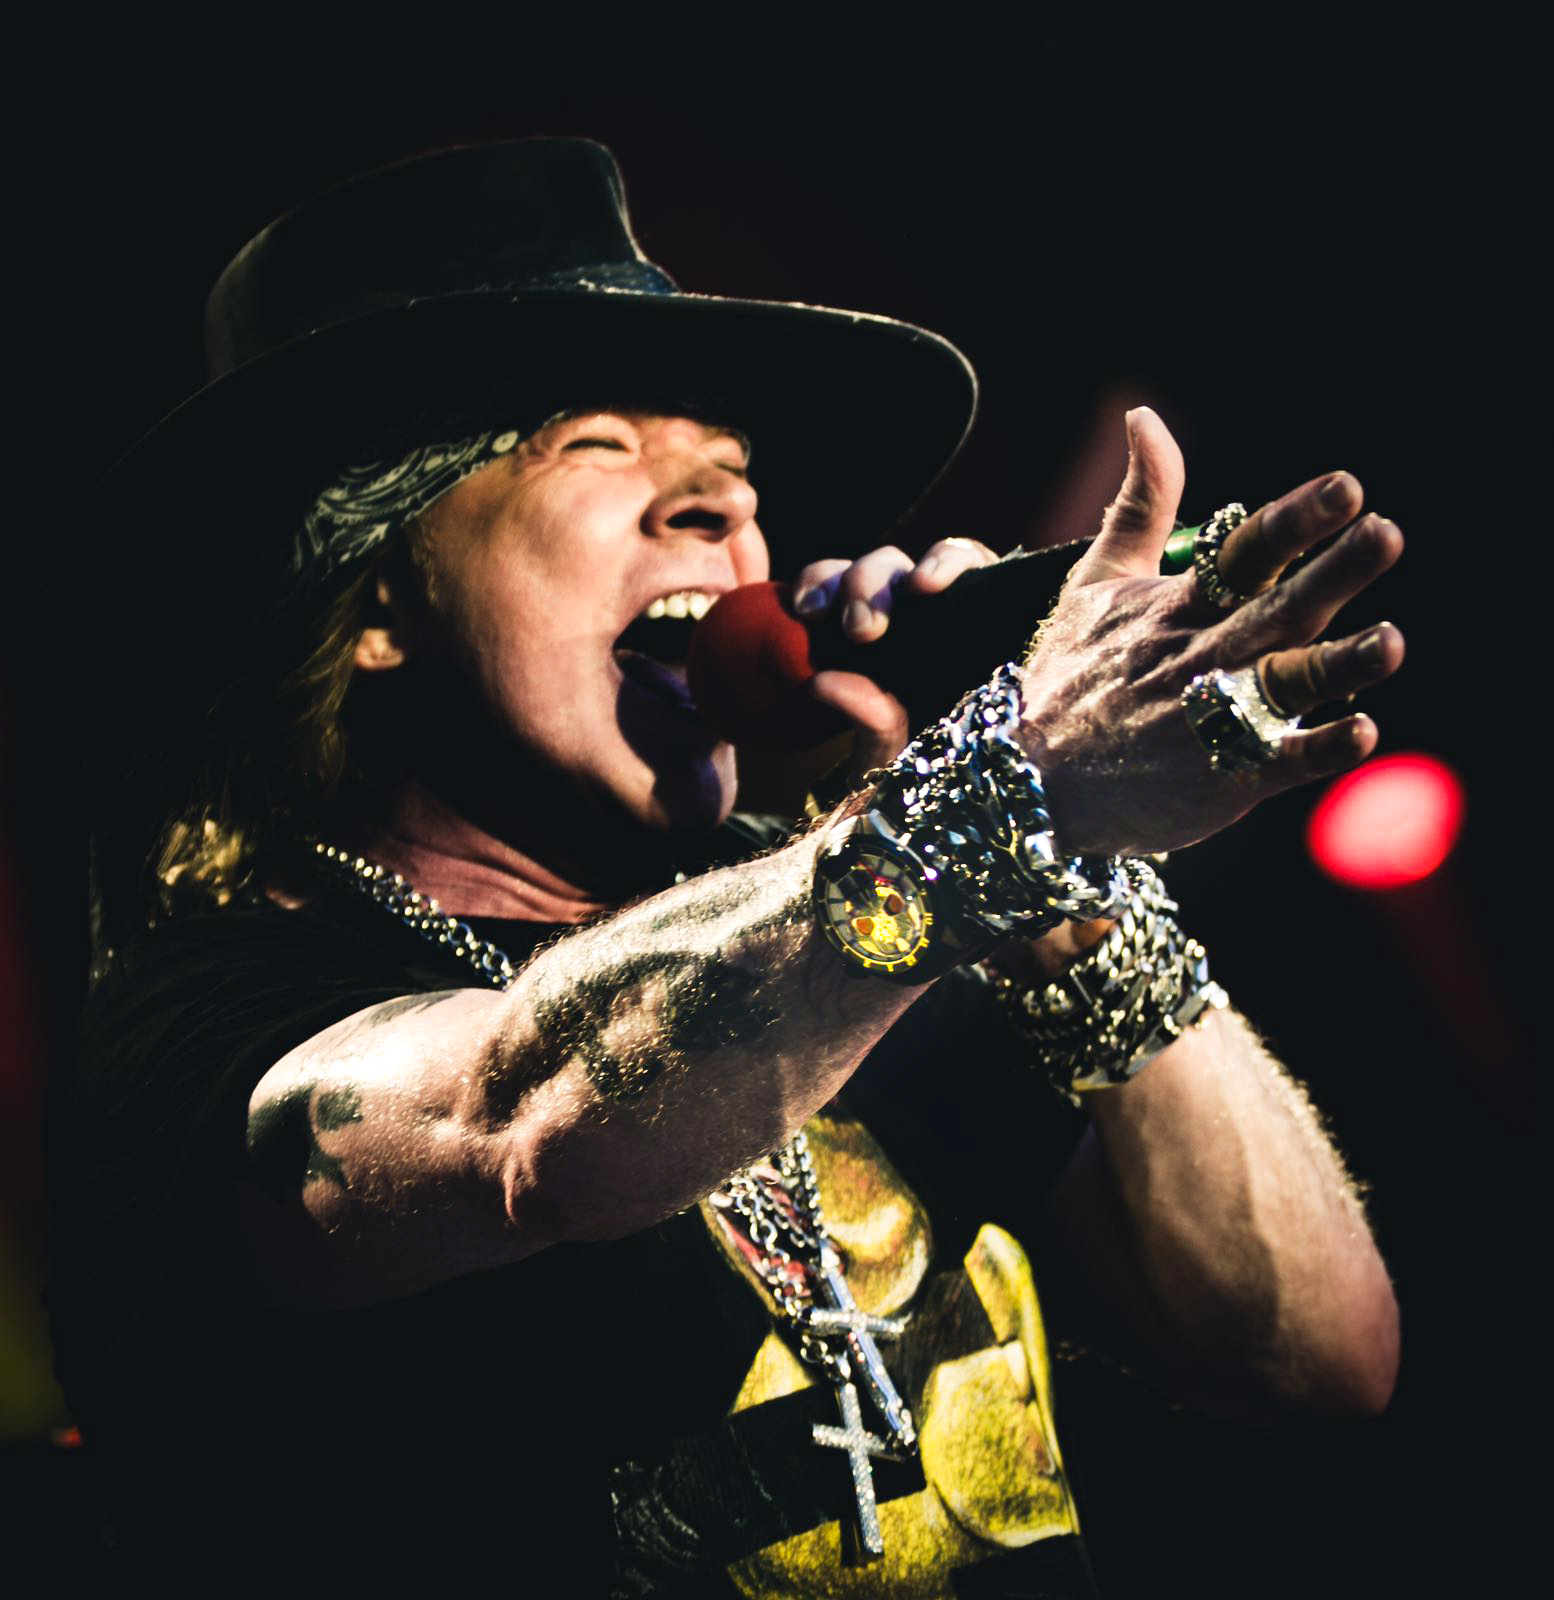 HYT takes centre stage with Axl Rose - WatchPro USA